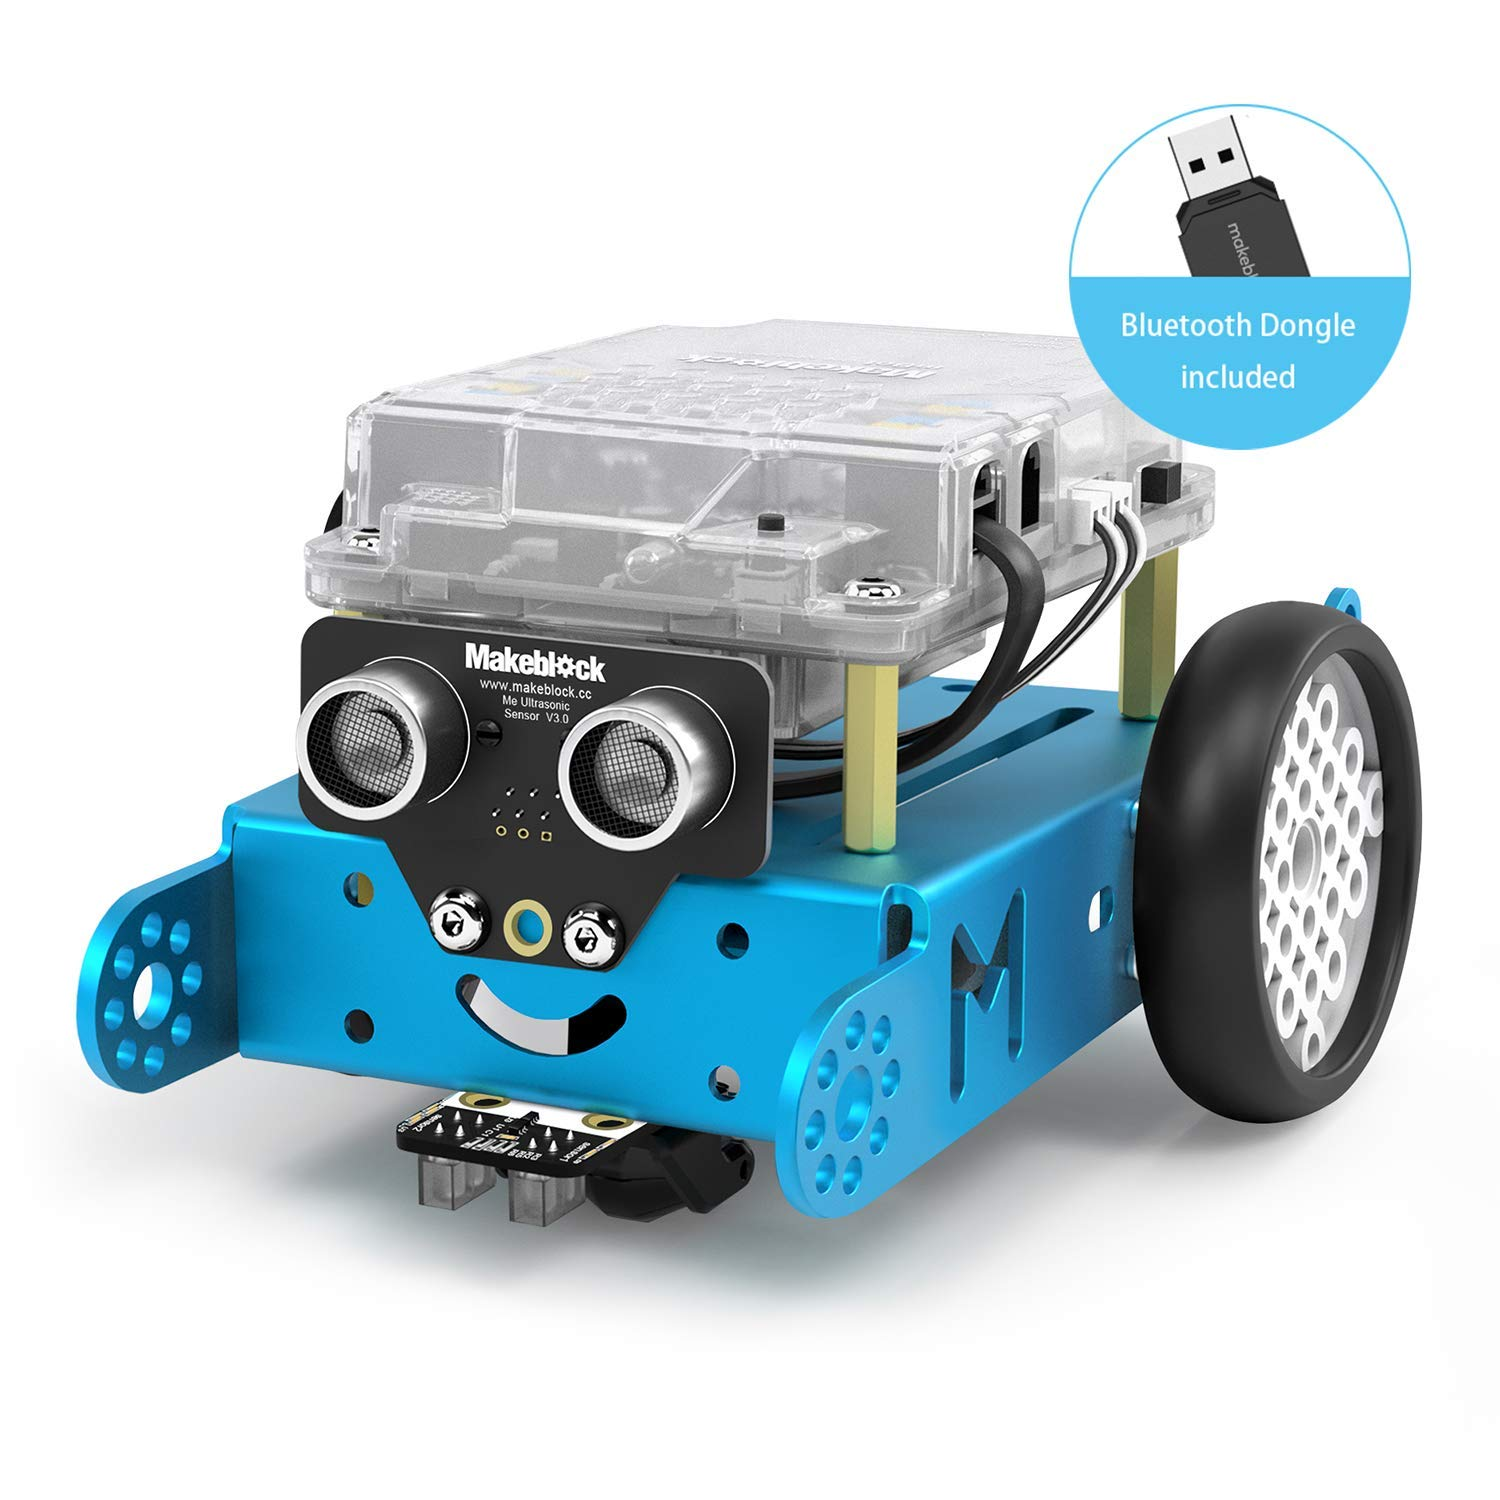 Makeblock mBot Robot Kit for Kids Ages 8+, STEM Education, Entry-Level Programming DIY Mechanical Building Blocks Robot, Suitable for Window/macOS/Linux/Chrome OS(Blue, Bluetooth Dongle, Classroom) by Makeblock